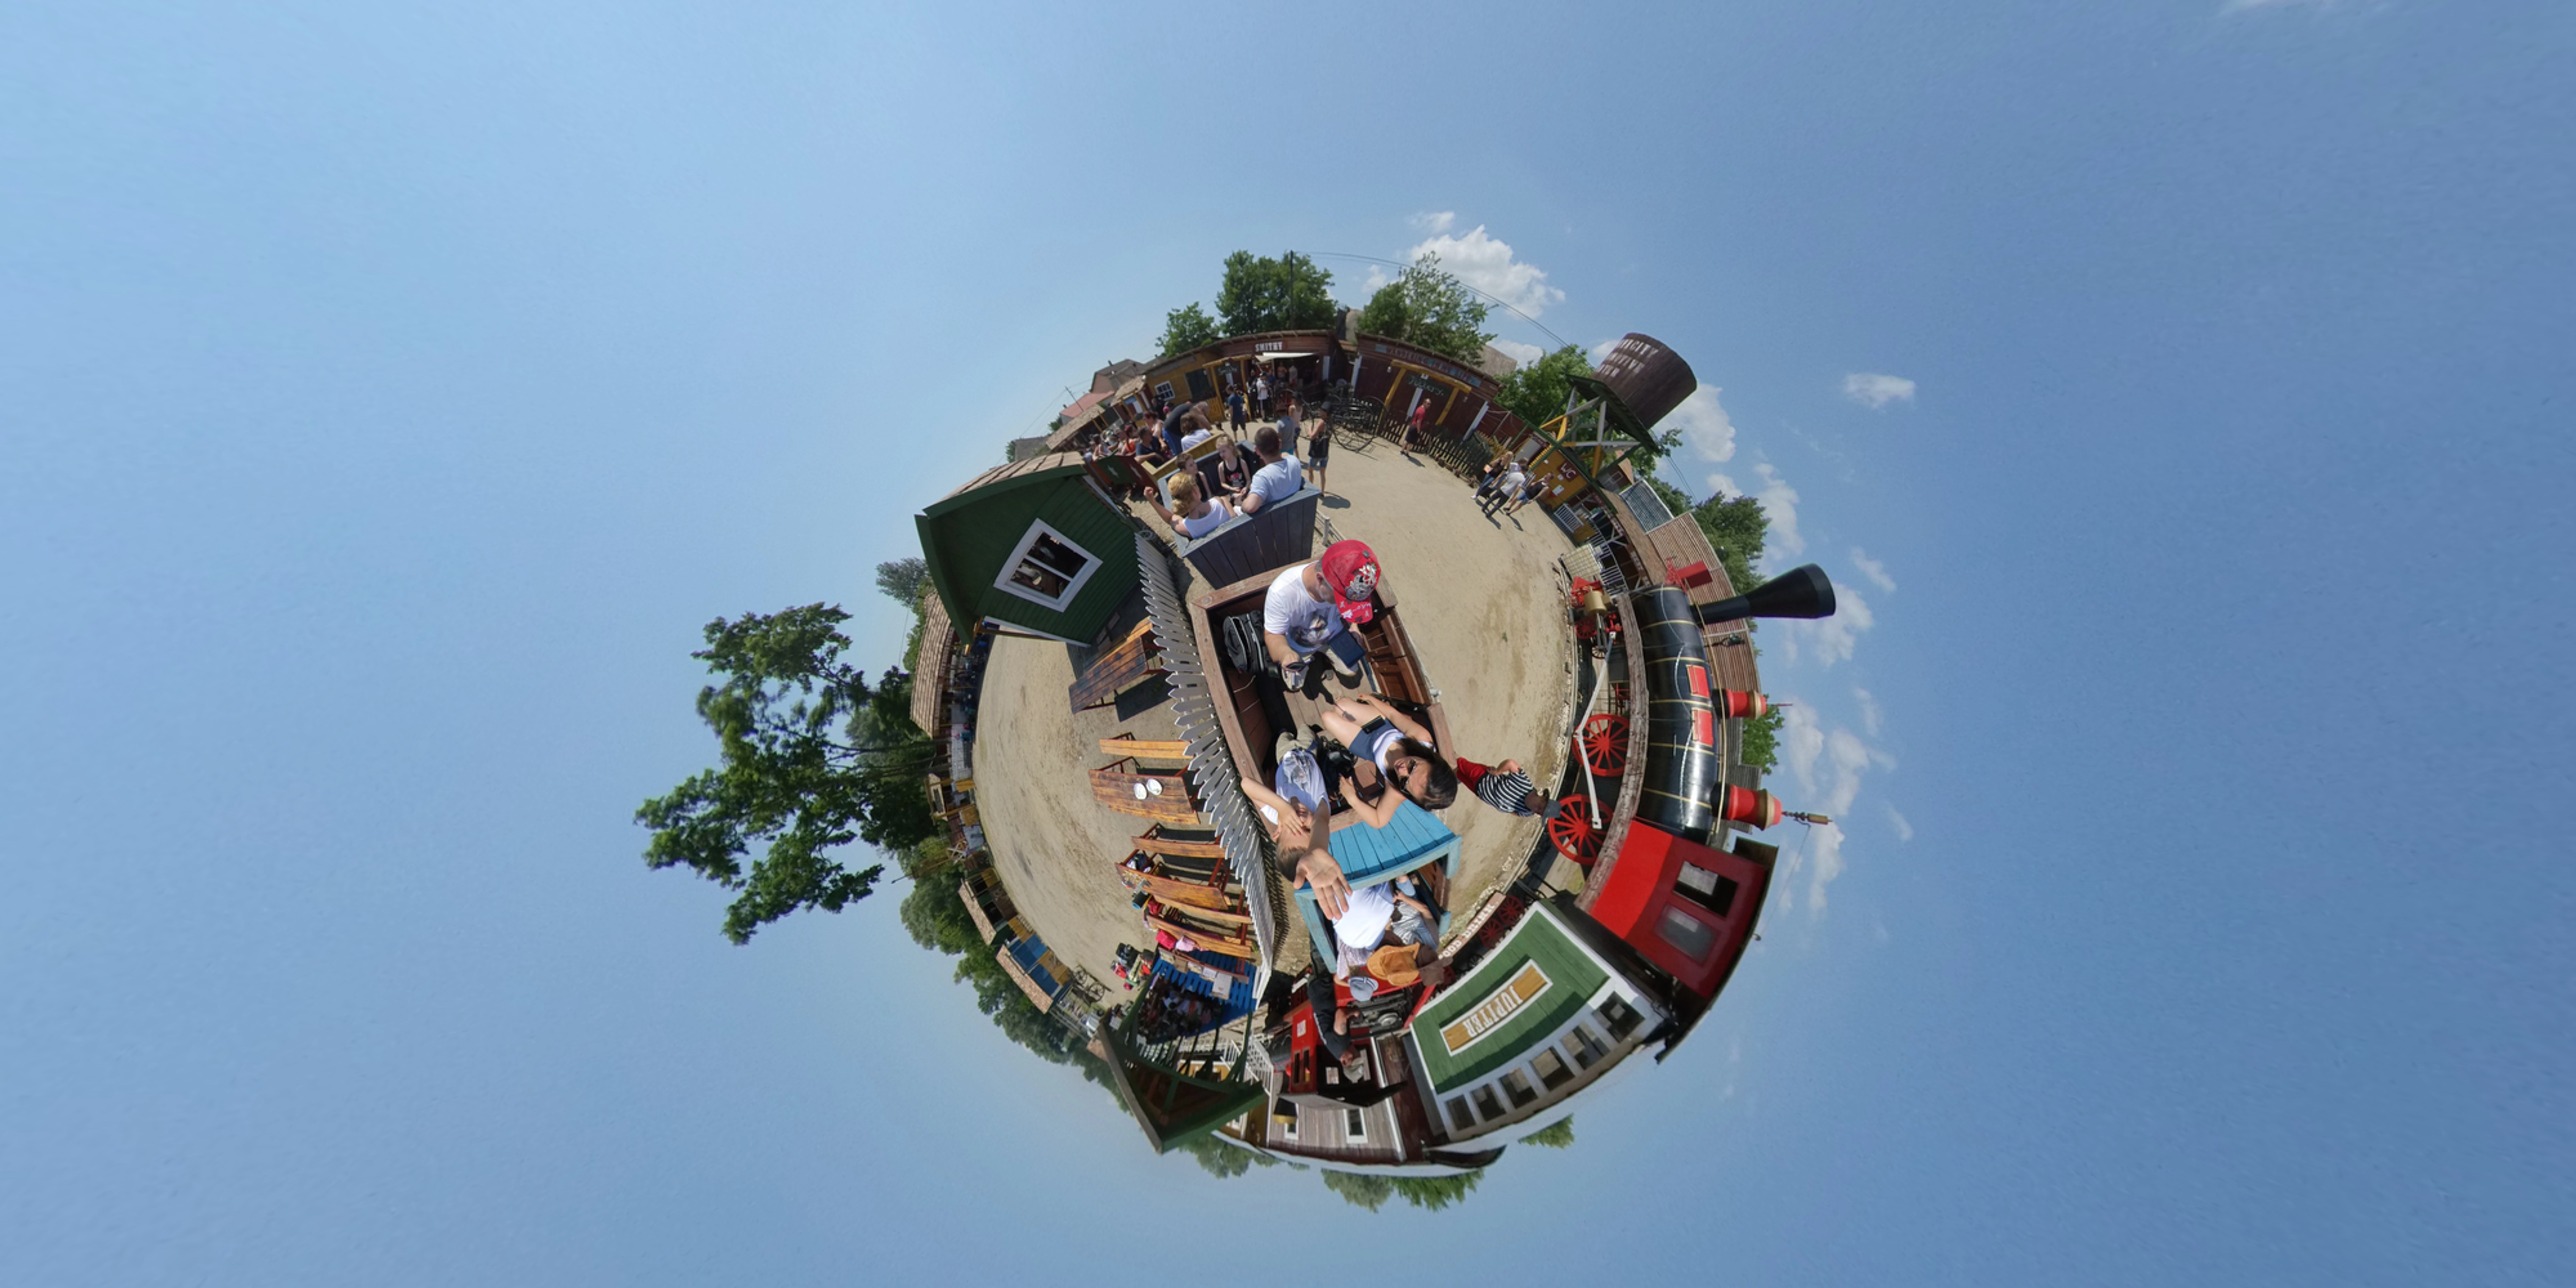 360 Photography and Video